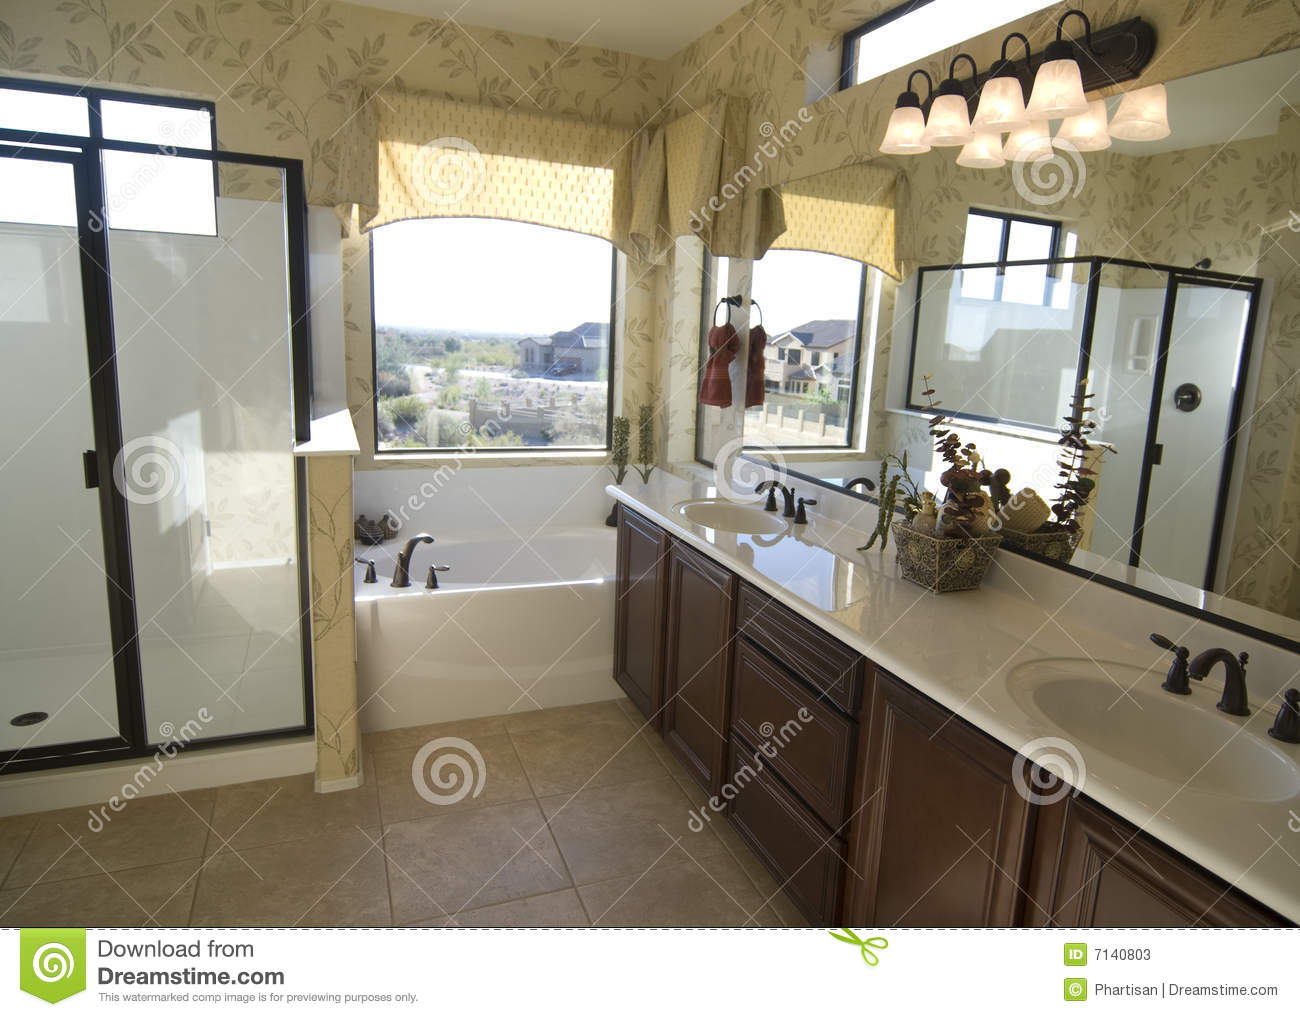 Stunning New Bathroom With Free Standing Tub And Walk In Shower In